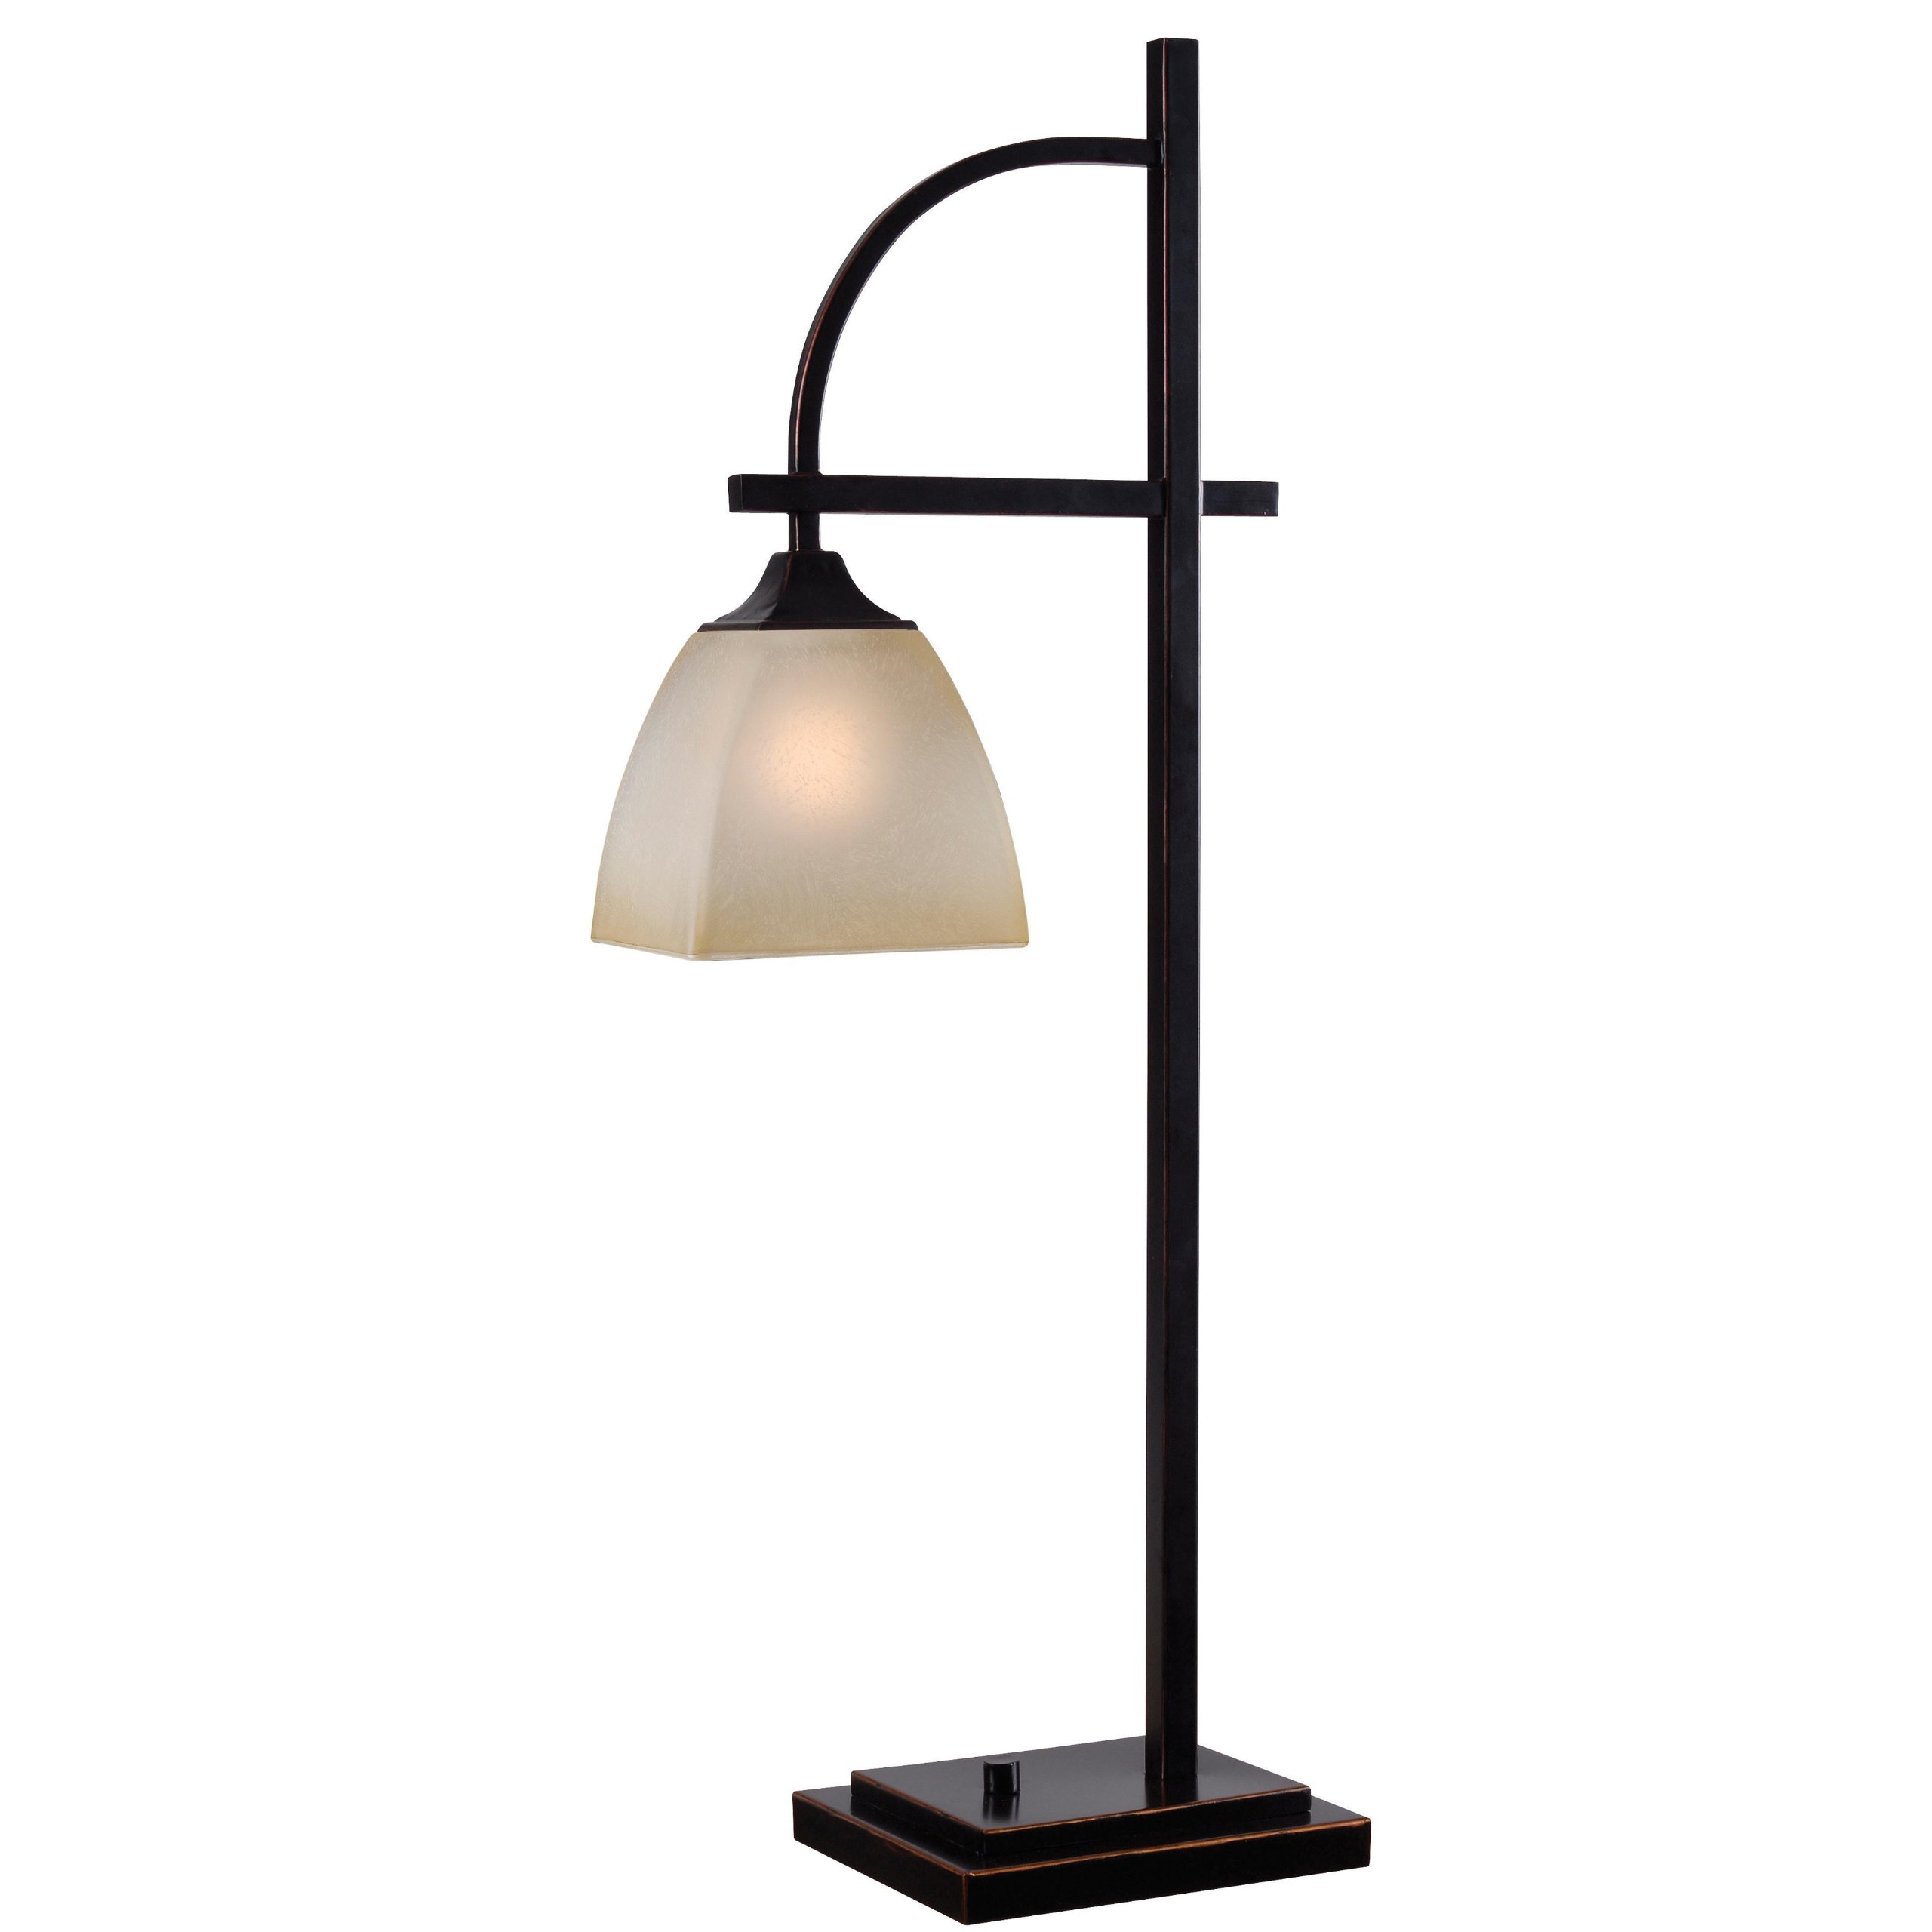 Kenroy Home 32290ORB Arch Table Lamp, 5'' x 5'' x 28'', Oil Rubbed Bronze Finish